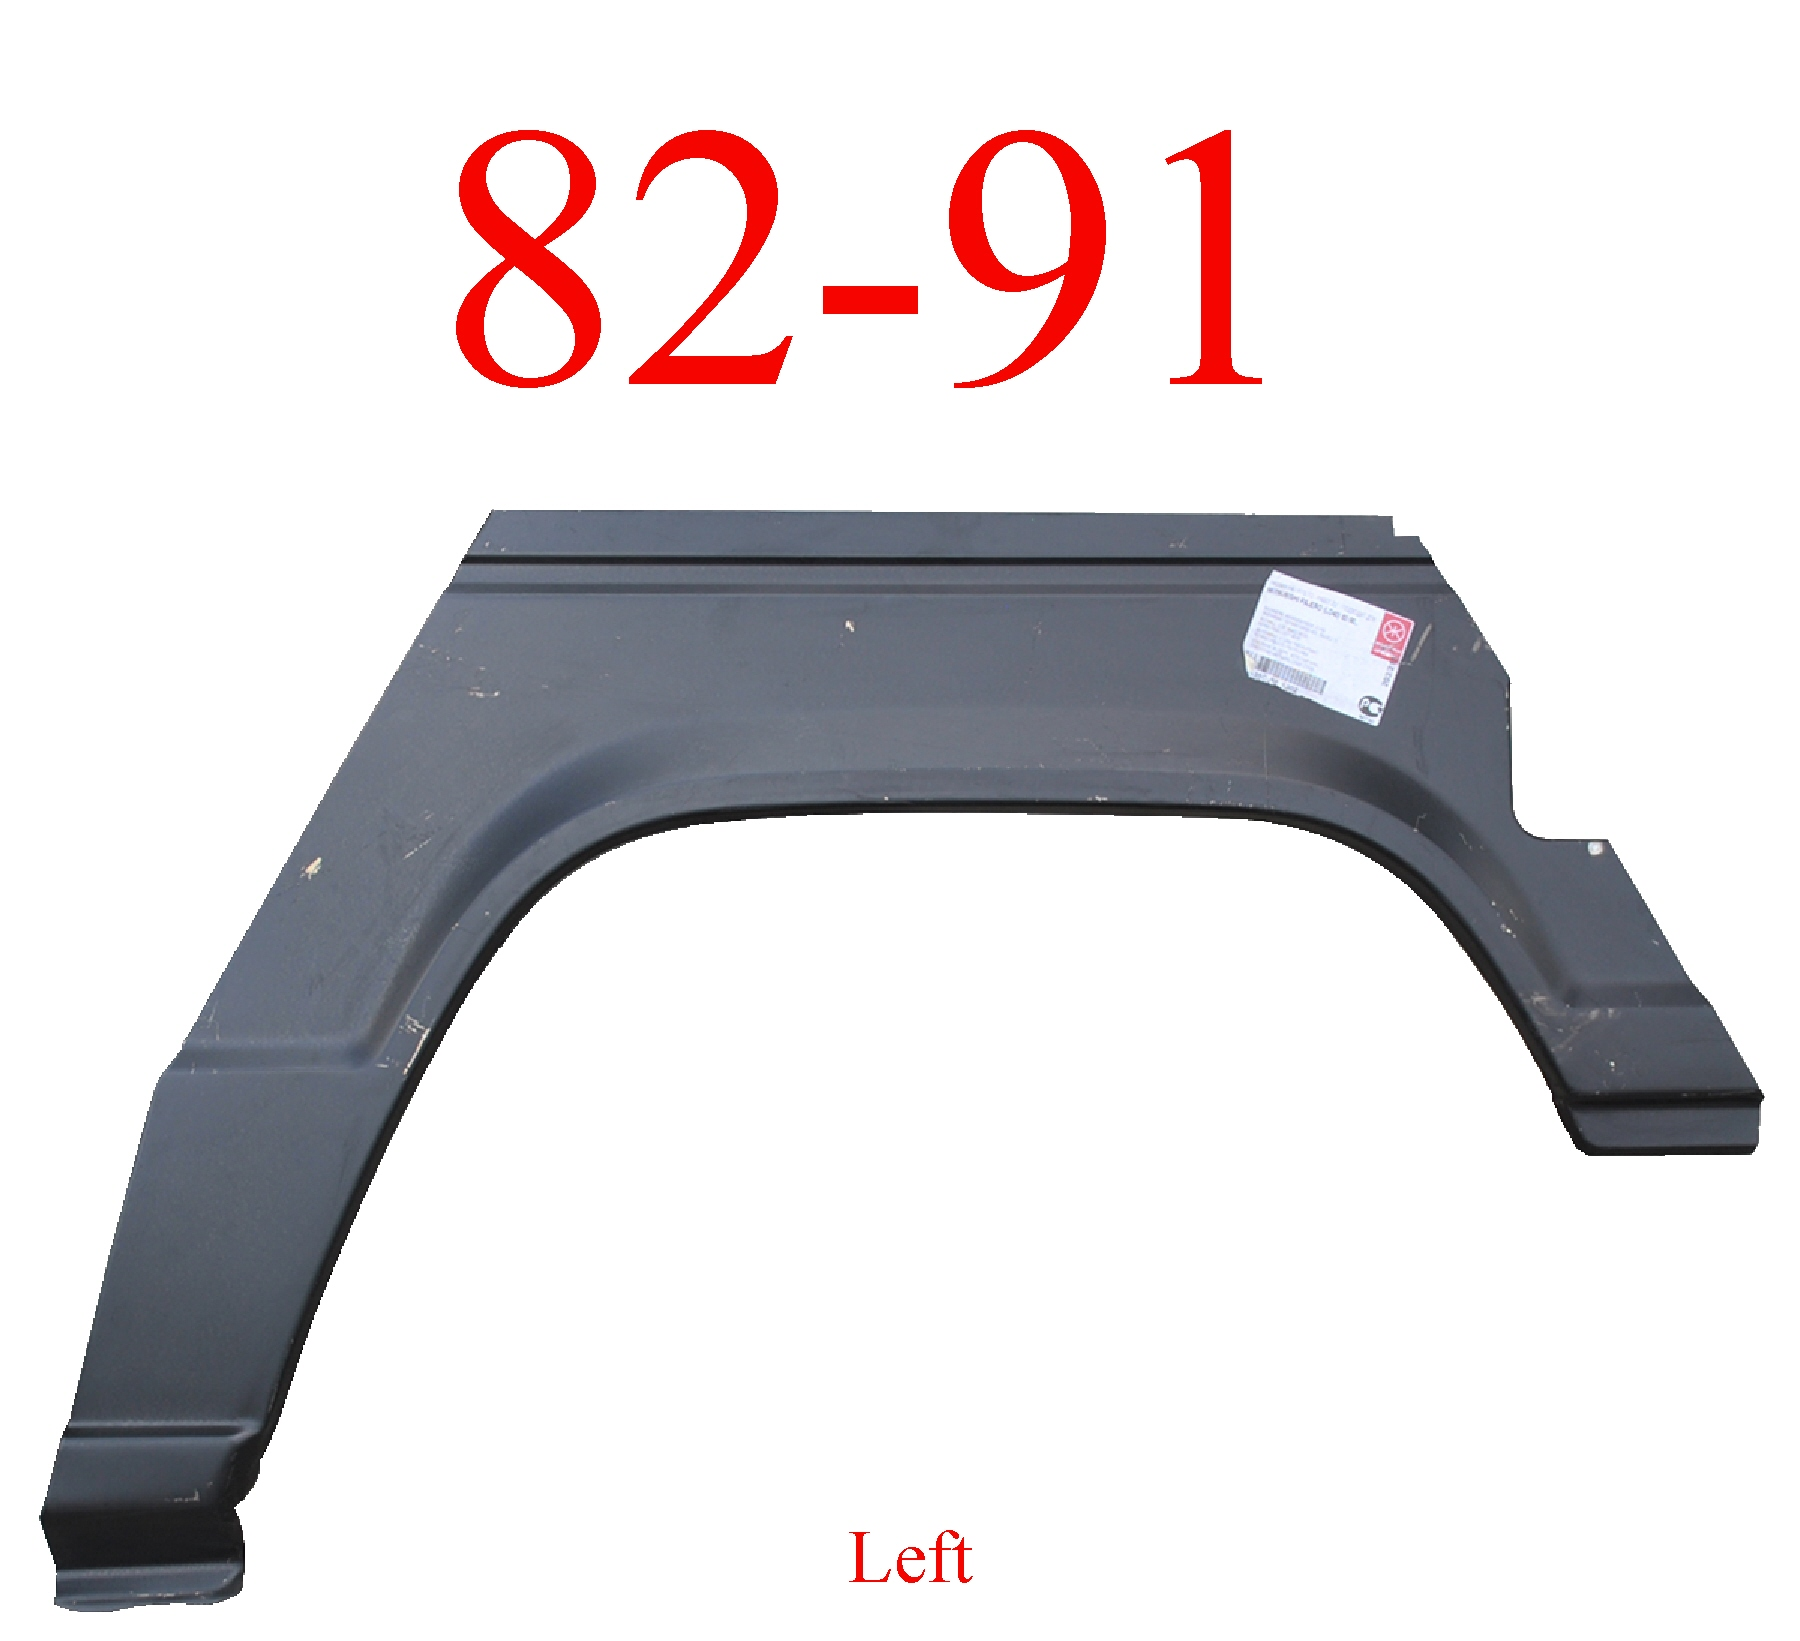 82-91 Mitsubishi Montero 2Dr Left Rear Upper Arch & Dog Leg